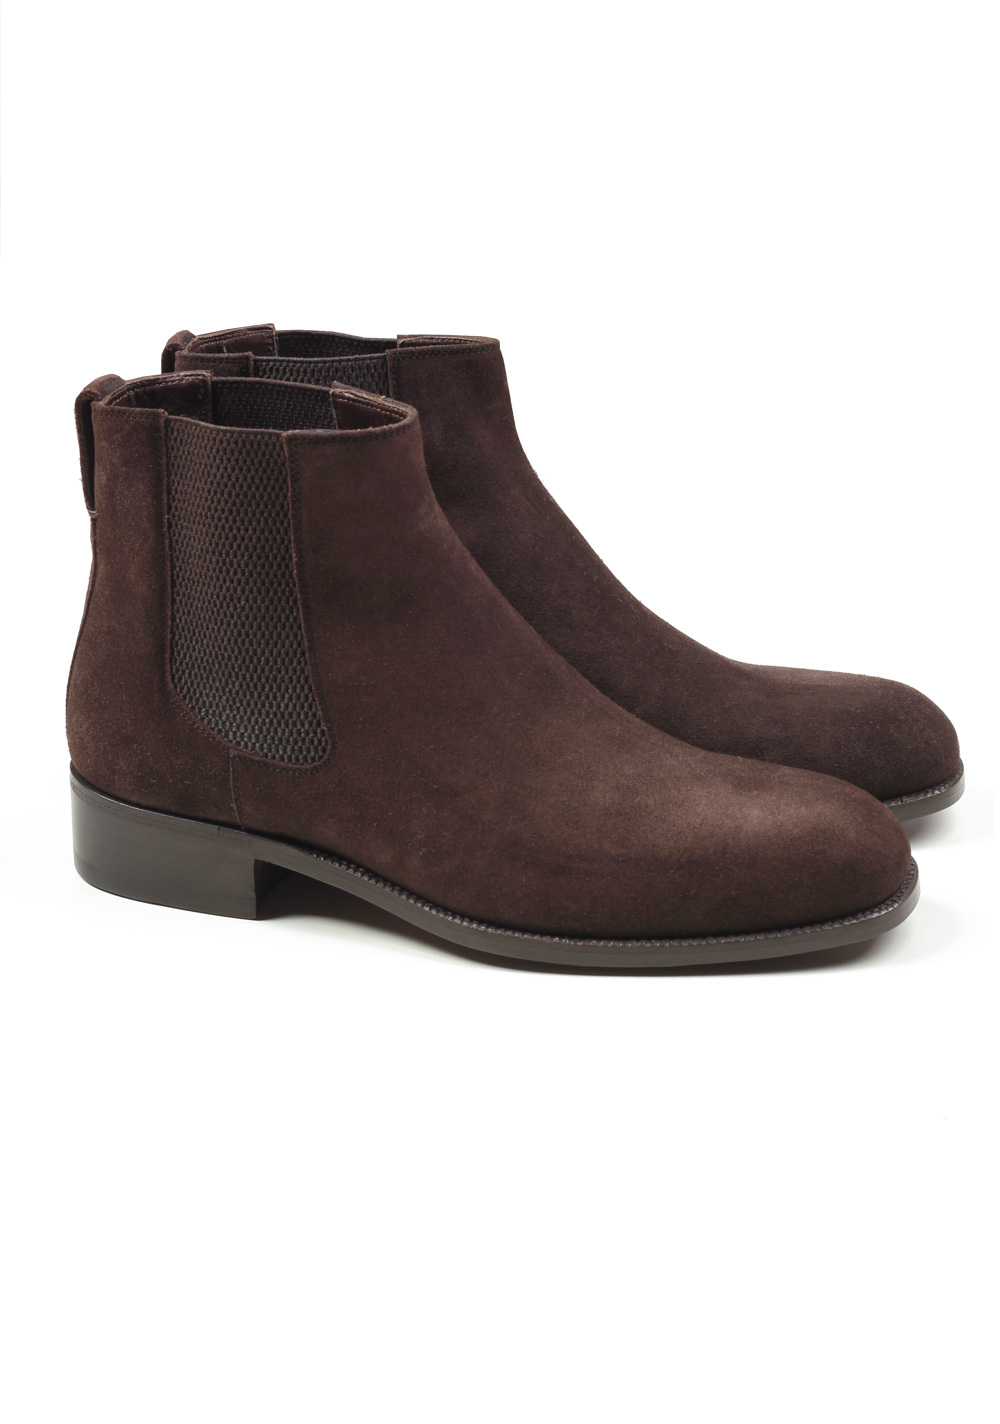 Uk 5 Suede Ford New 10 Shoes Chelsea Size Wilson Brown Tom Boots 4f6fqAHwPx